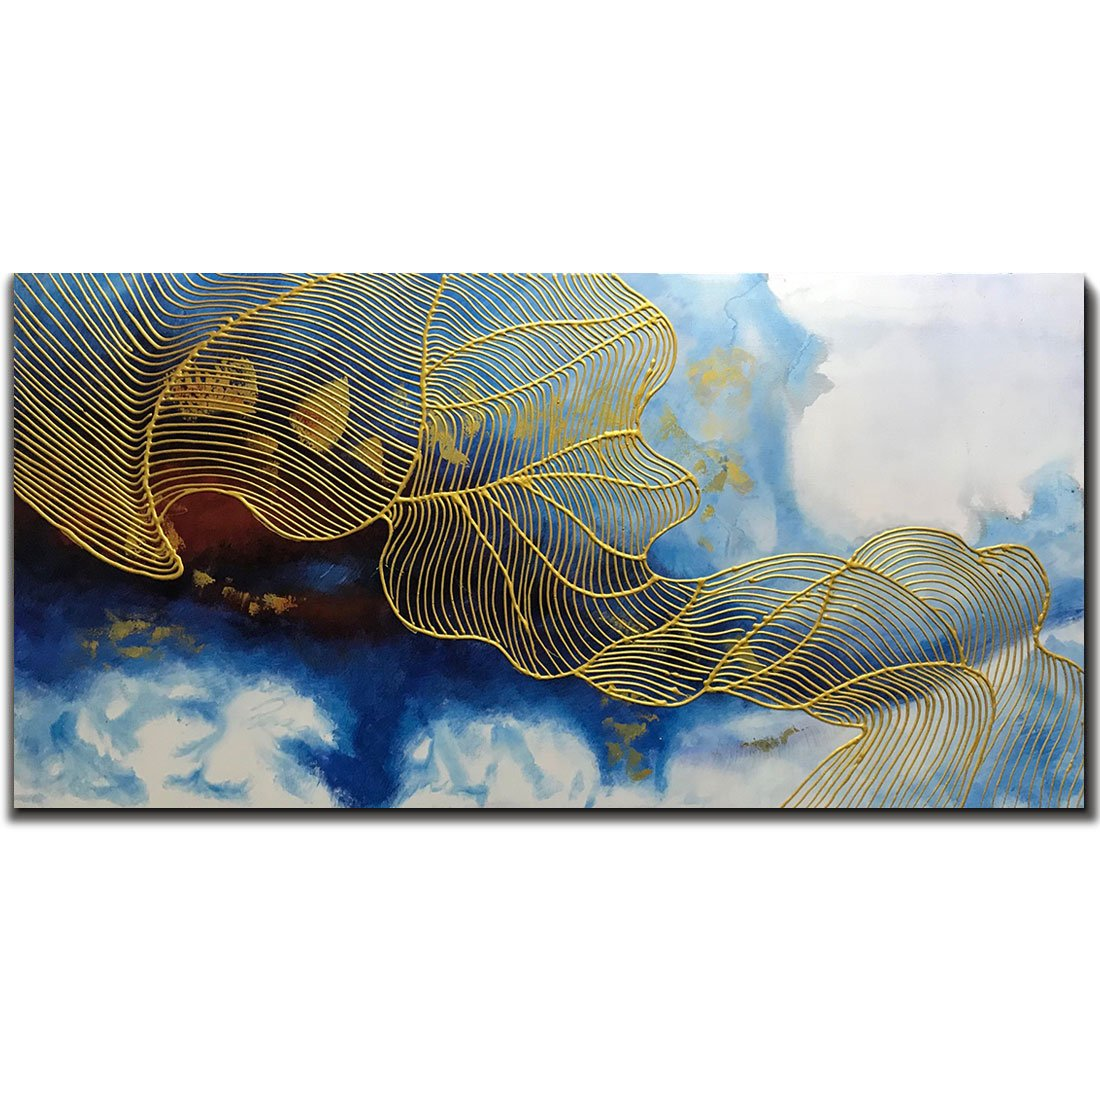 Yotree Paintings, 24x48 Inch Paintings Oil Hand Painting Painting 3D Hand-Painted On Canvas Abstract Artwork Art Wood Inside Framed Hanging Wall Decoration Abstract Painting